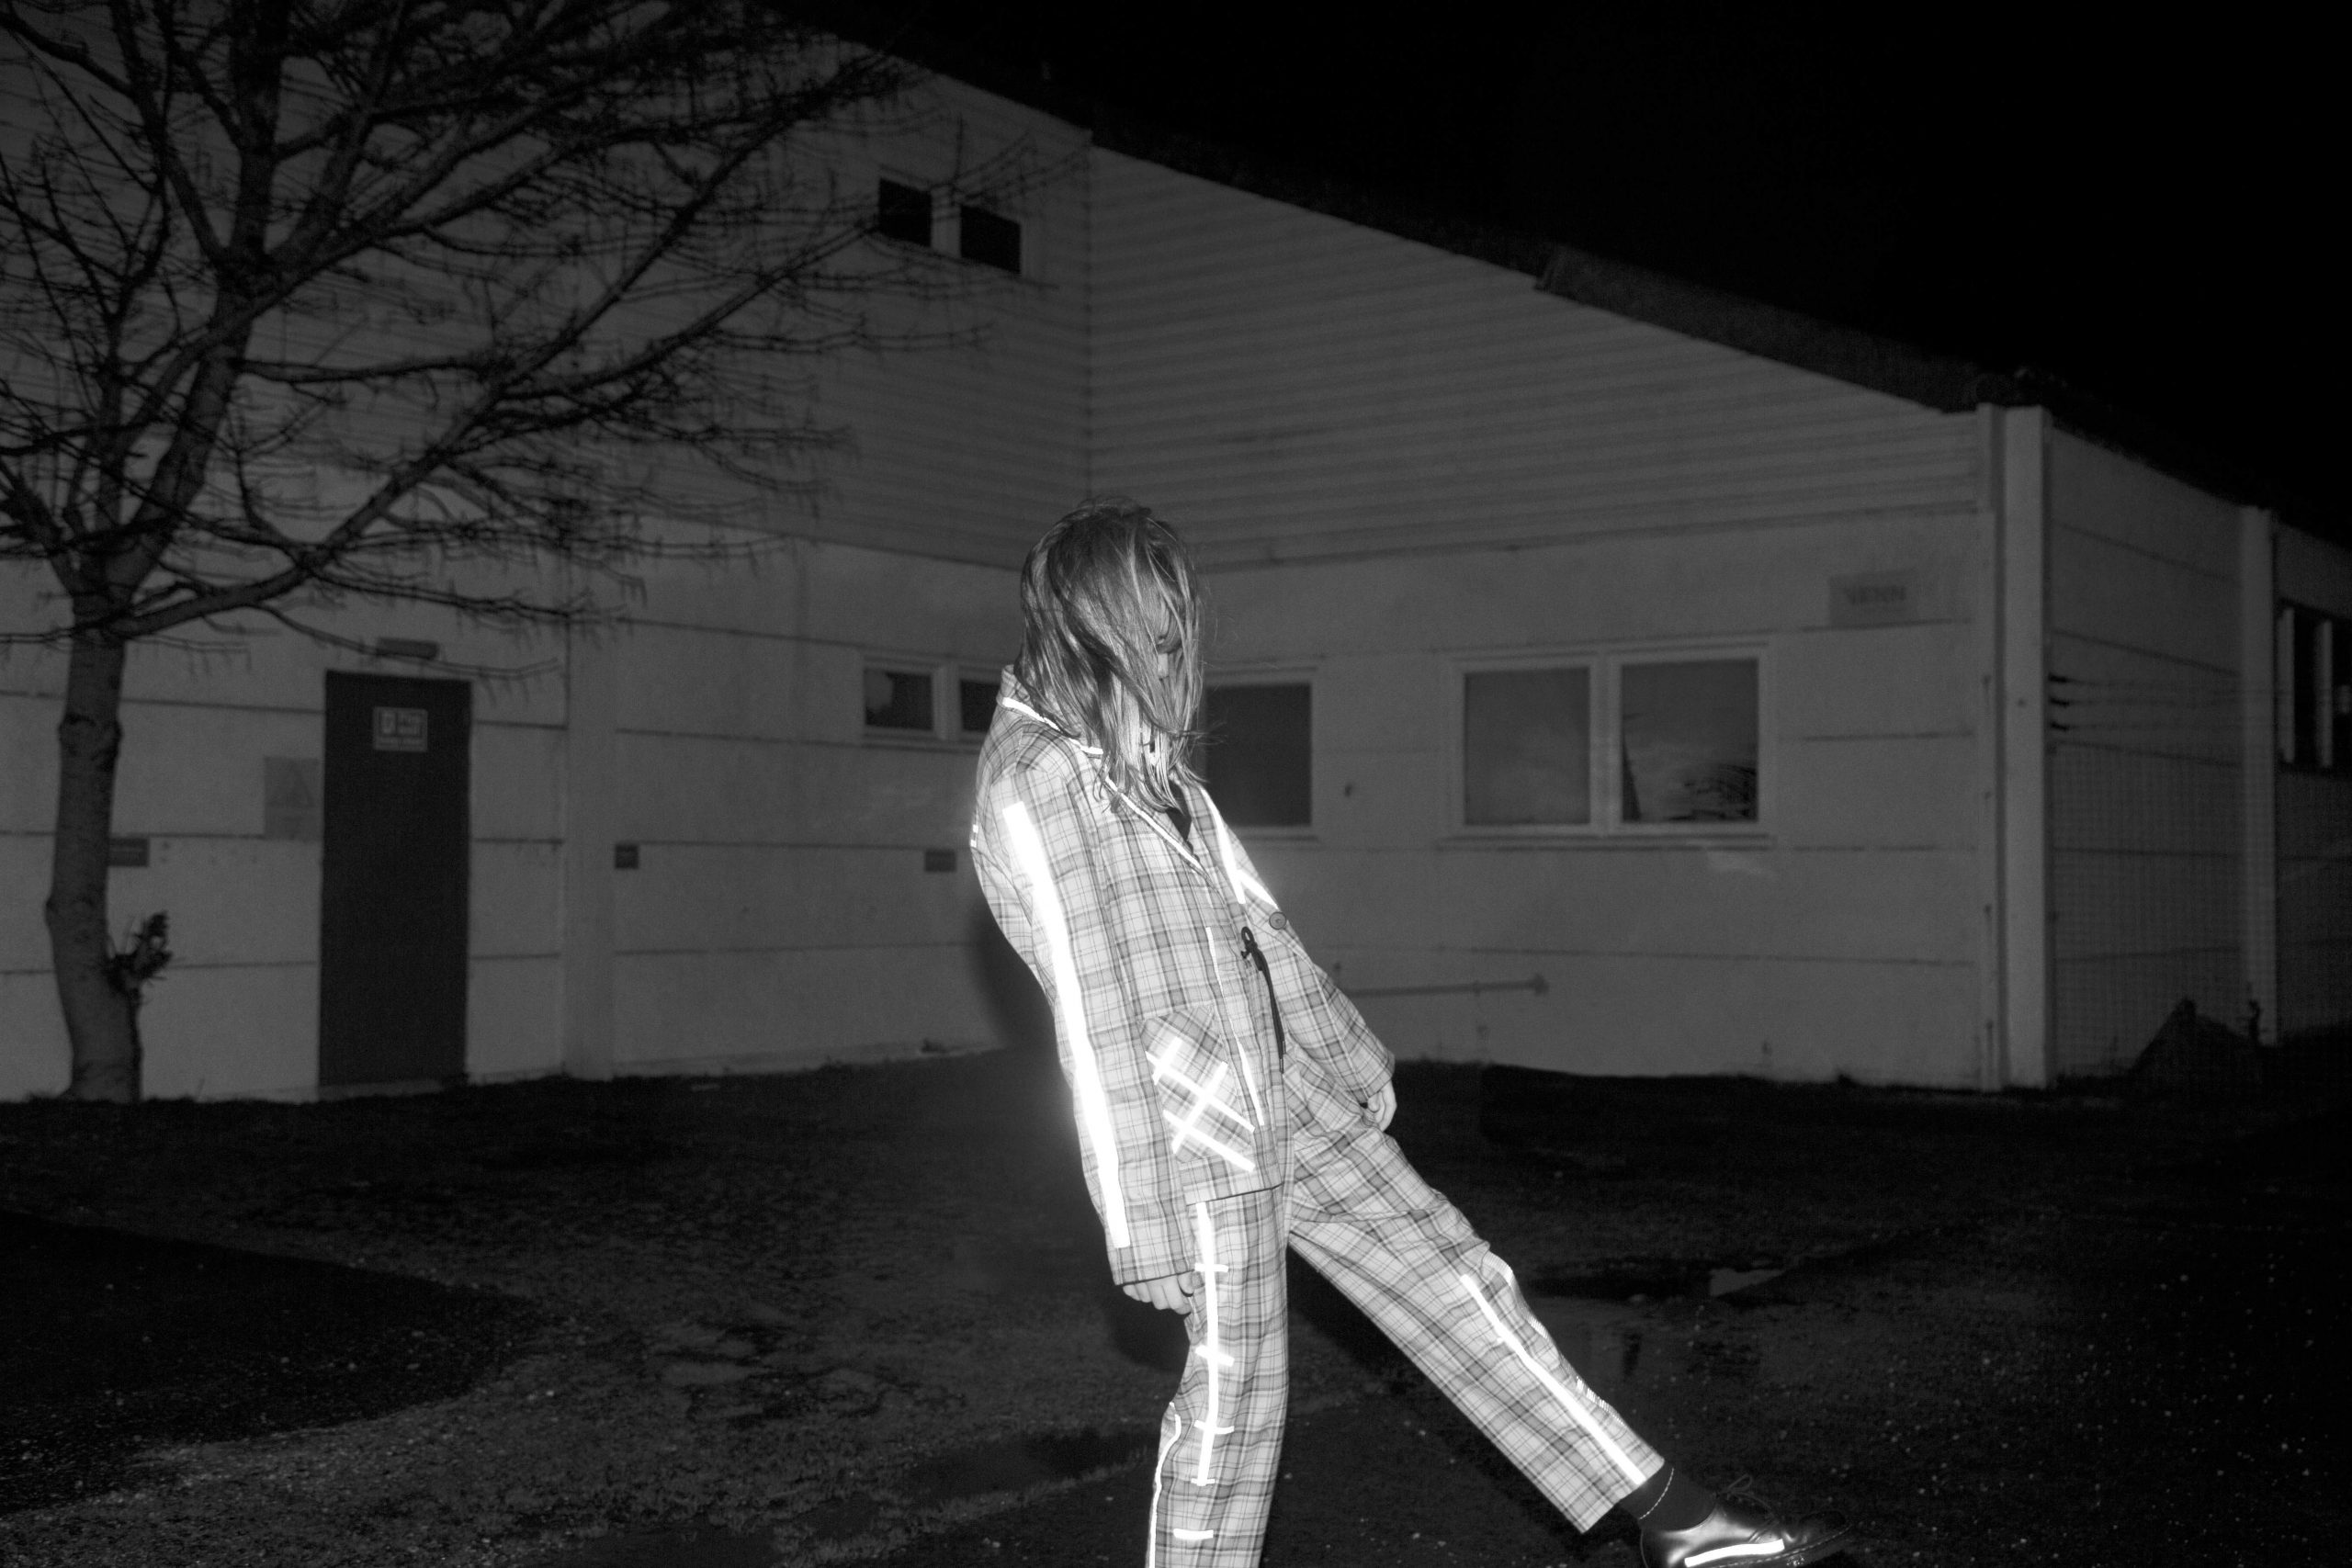 Sophie Preston - Turn and Face the Strange. Illuminated figure jumping over mounds of land, house in background